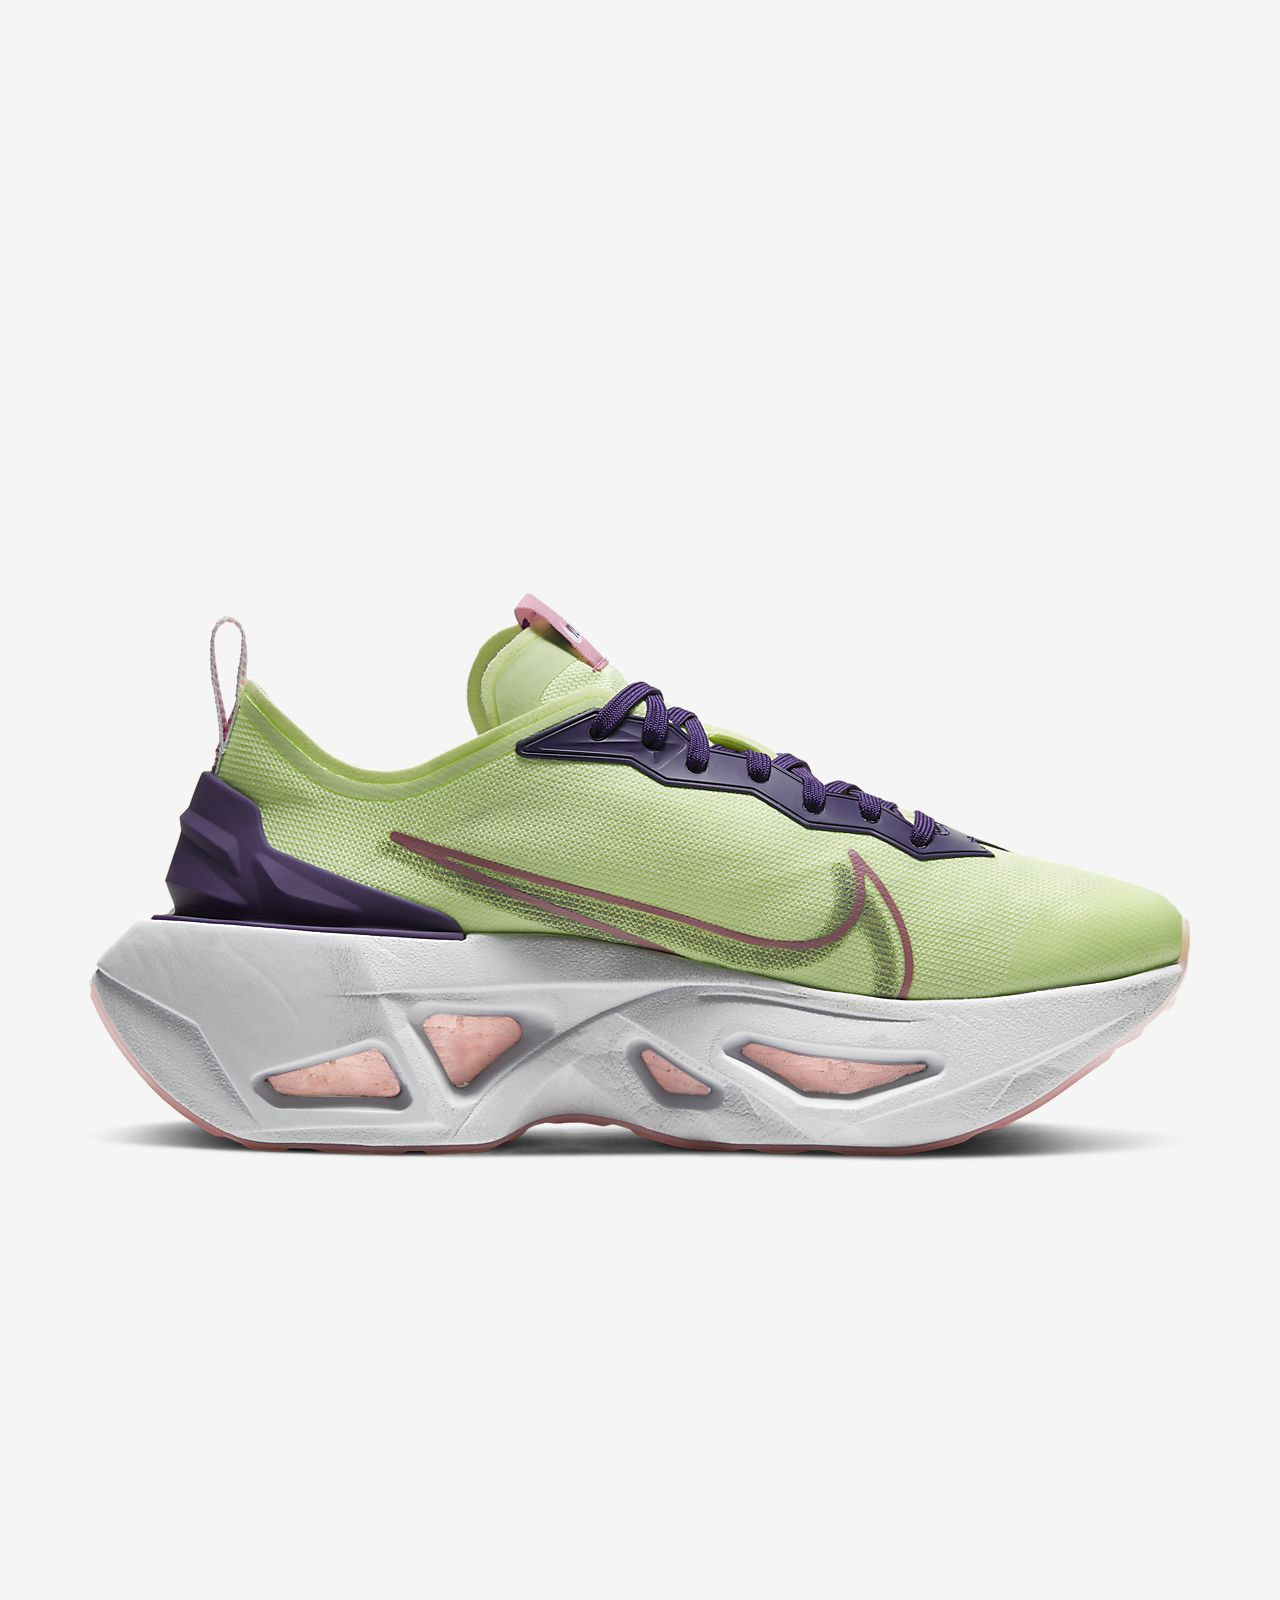 Nike Zoom X Vista Grind Women's Shoe